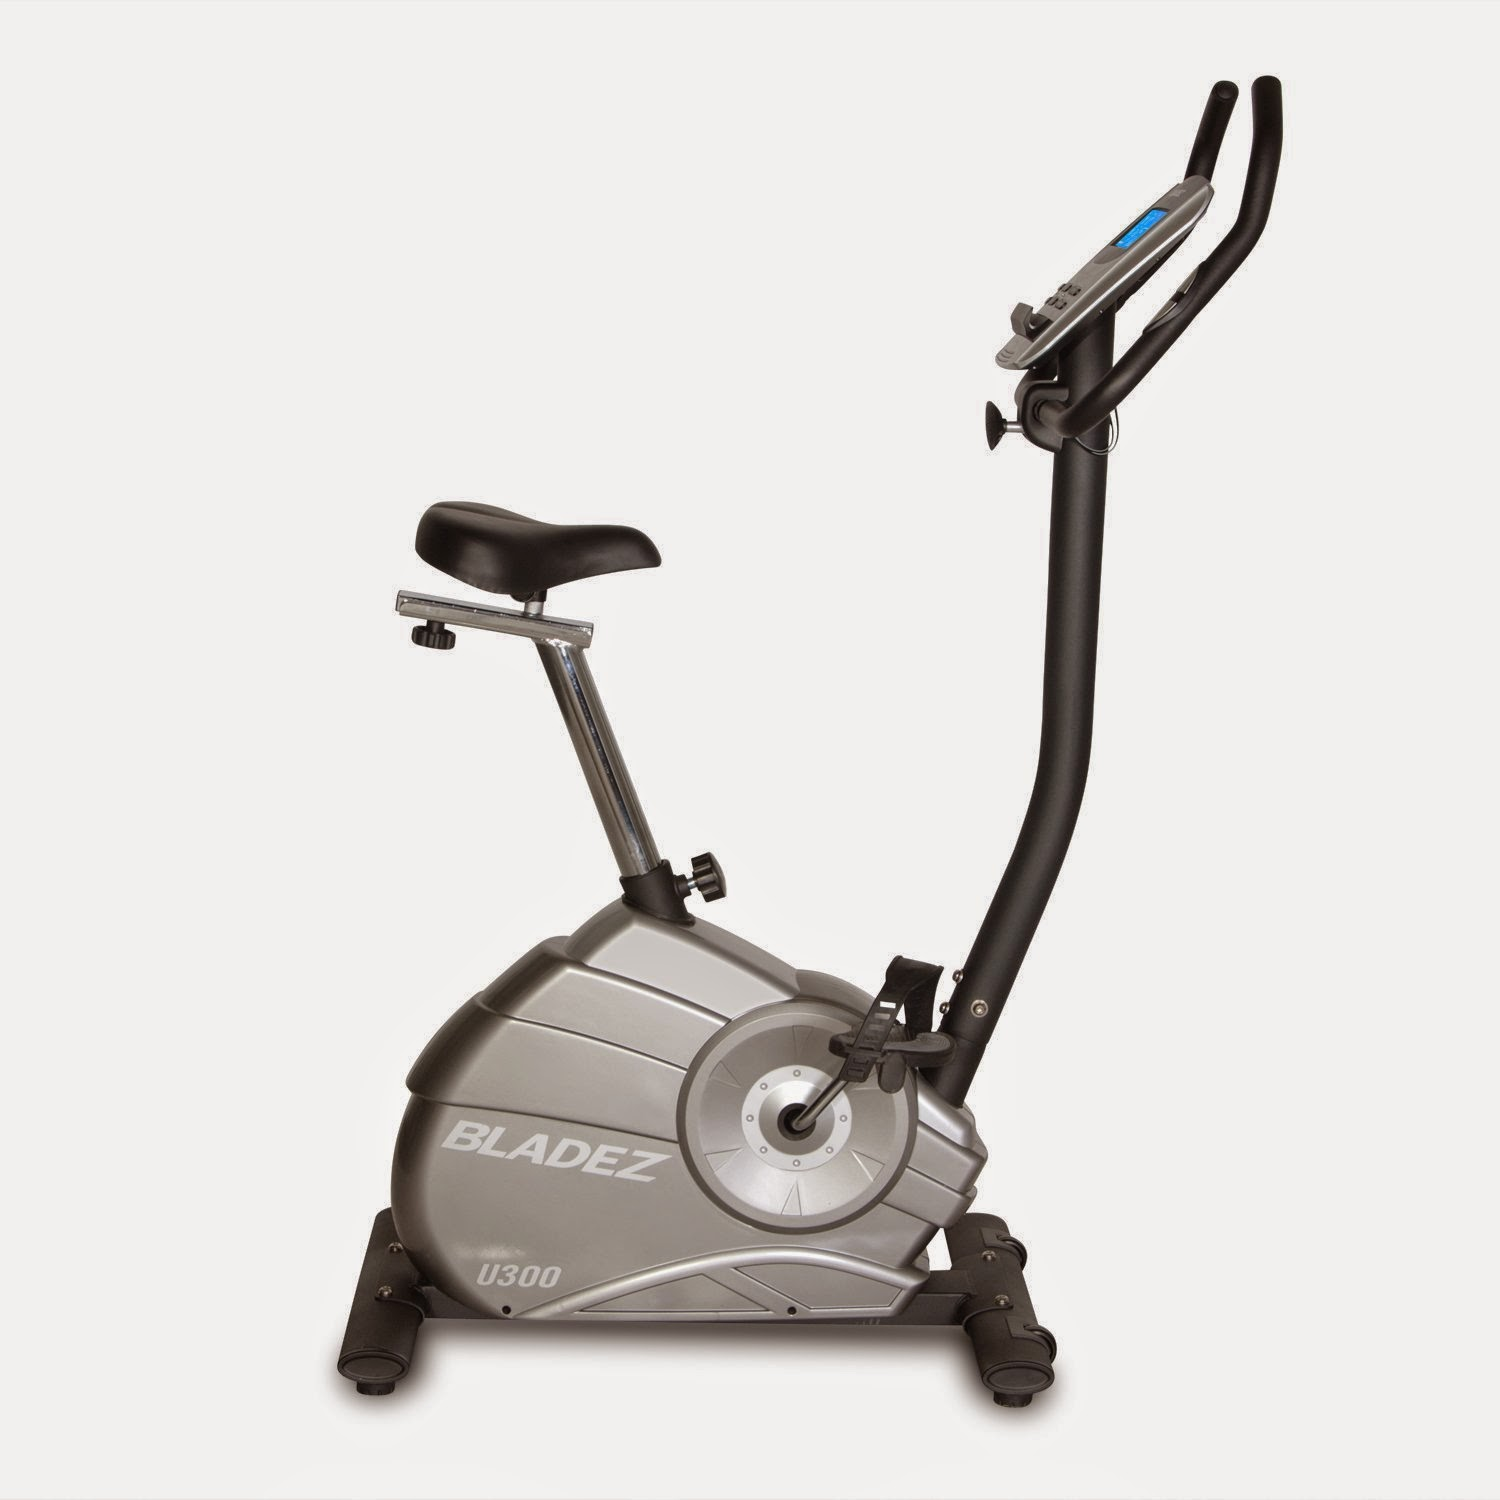 Bladez Fitness U300 Upright Exercise Bike, picture, image, review and compare features with U400 and U500i